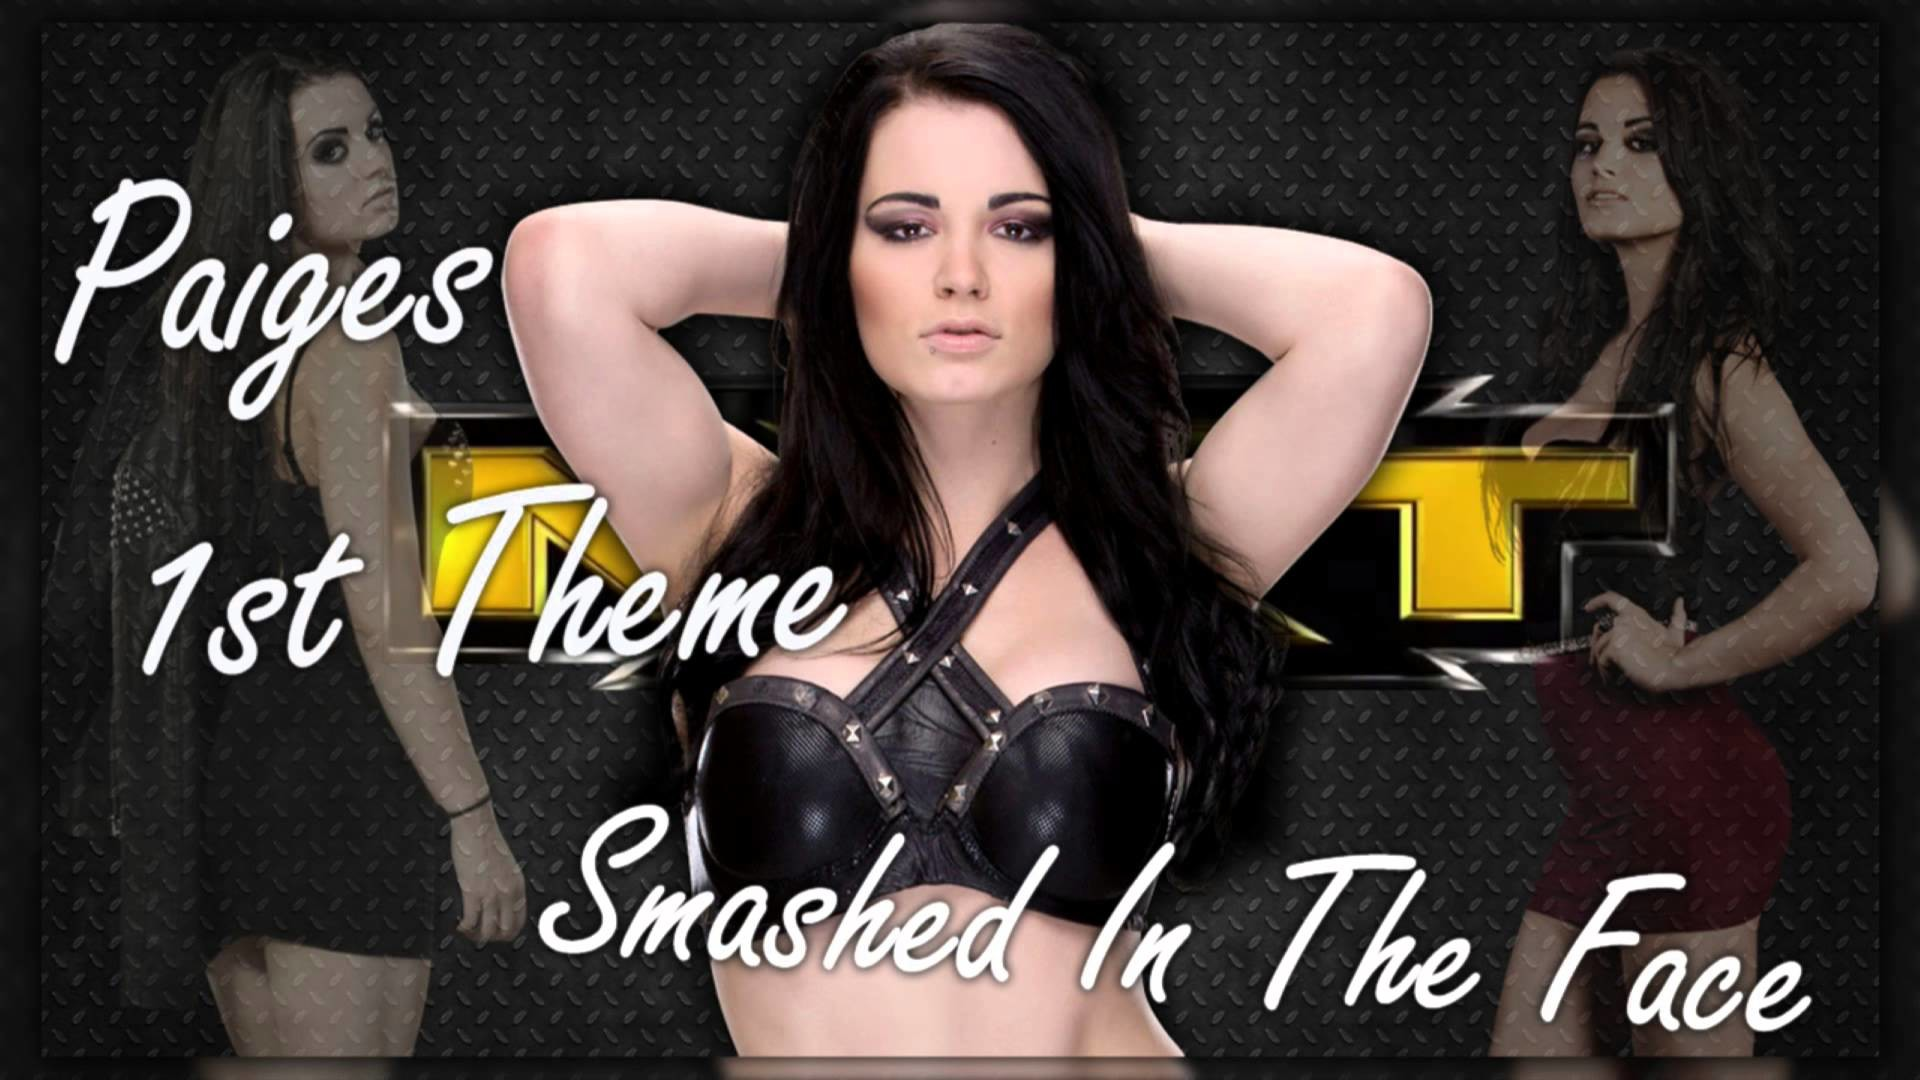 1920x1080 WWE NXT Divas : Paige 1st Theme - Smashed In The Face + Download - YouTube